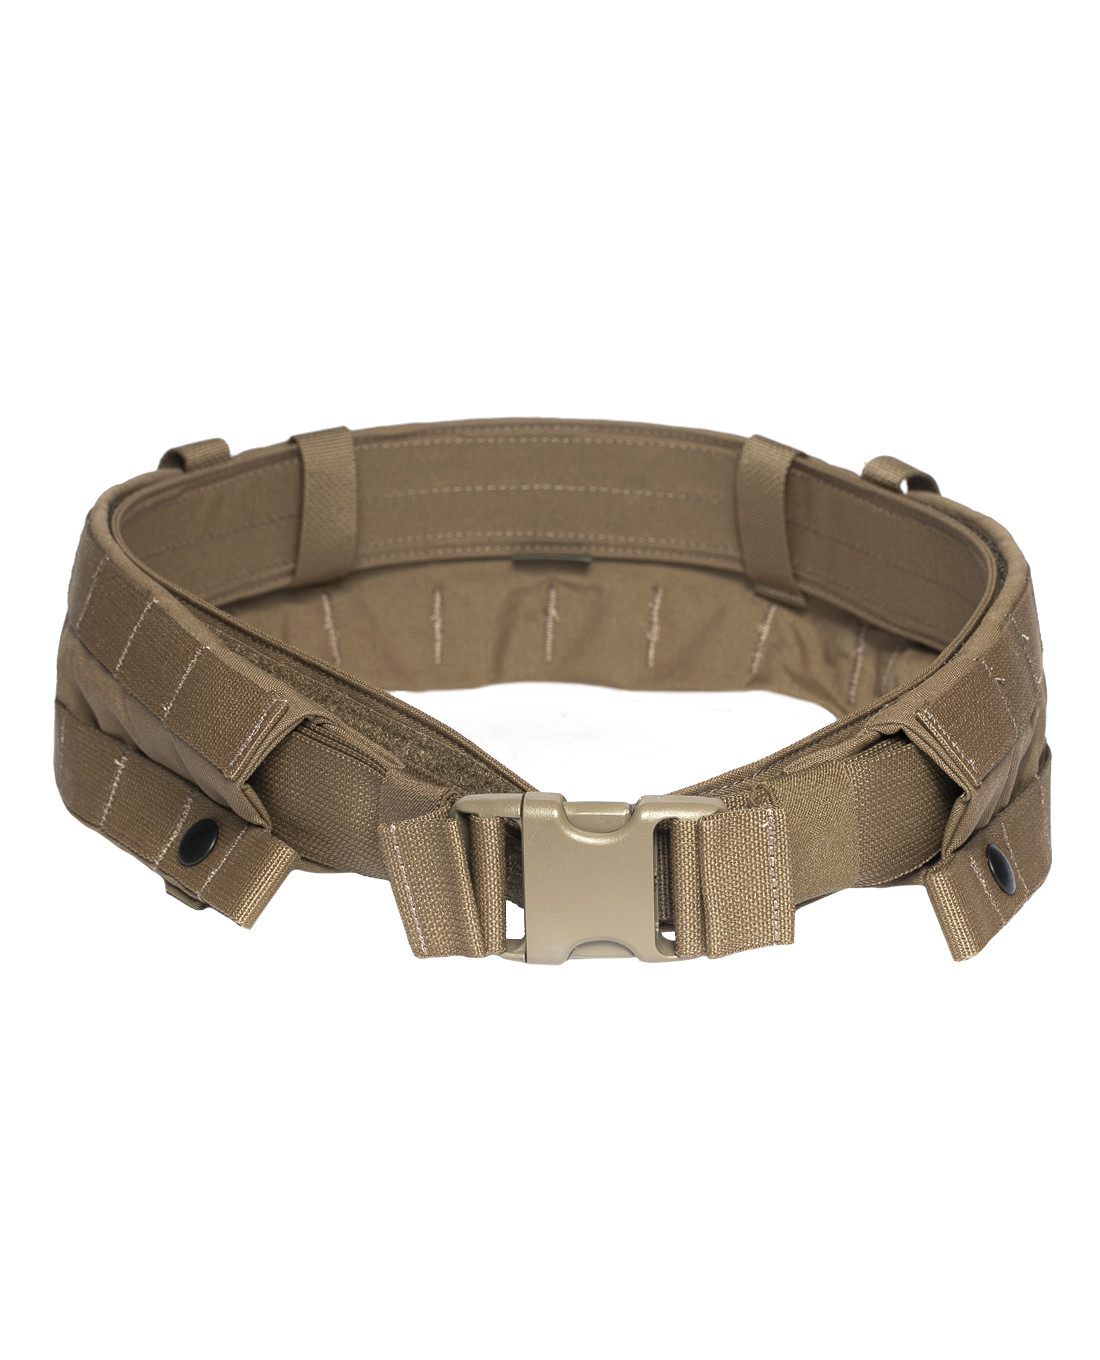 Crye Precision Modular Rigger's Belt 2 0 Coyote - MRB-BB2-22- - TACWRK